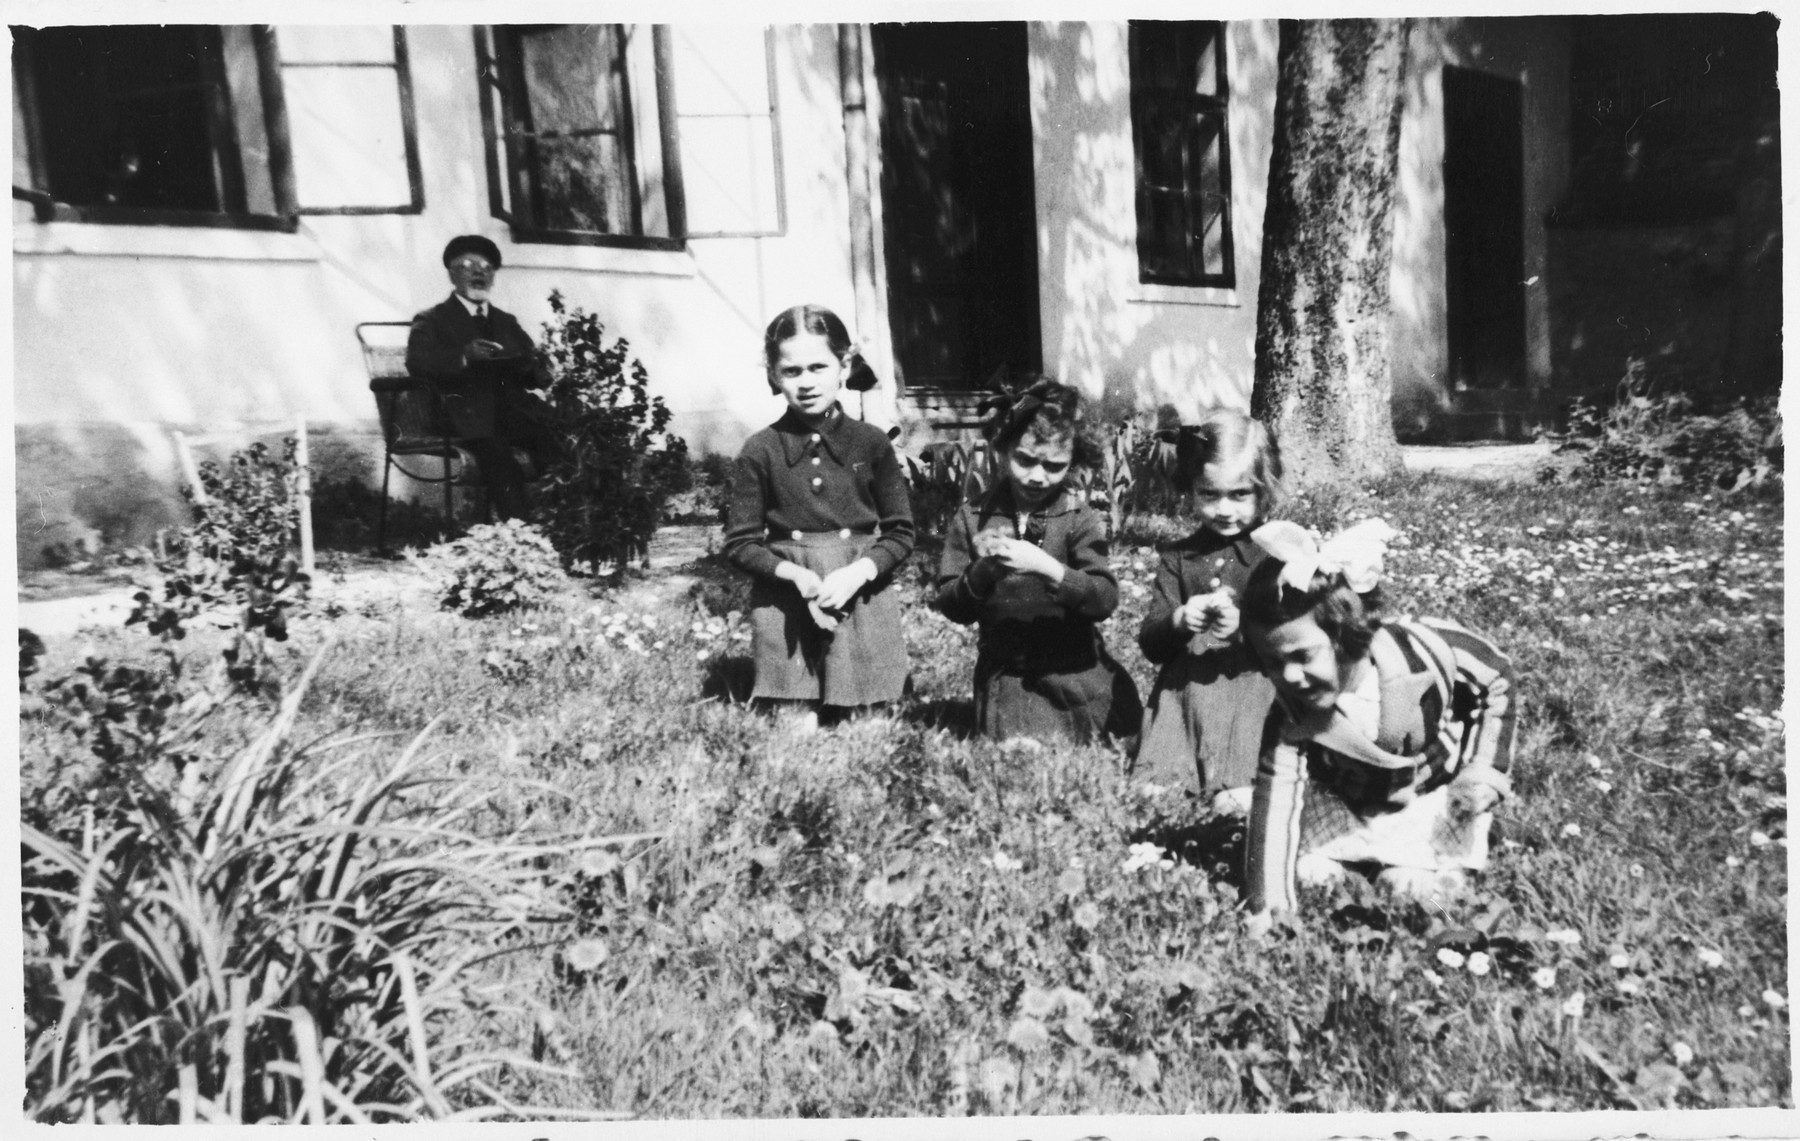 Four young Jewish girls play in the garden while their grandfather looks on.  Pictured are Zdenka and Vera Apler and Edita Deutsch.  In the background is Rabbi Leopold Deutsch.  He is seated in front of a building that served both as the Deutsch home and the local synagogue.